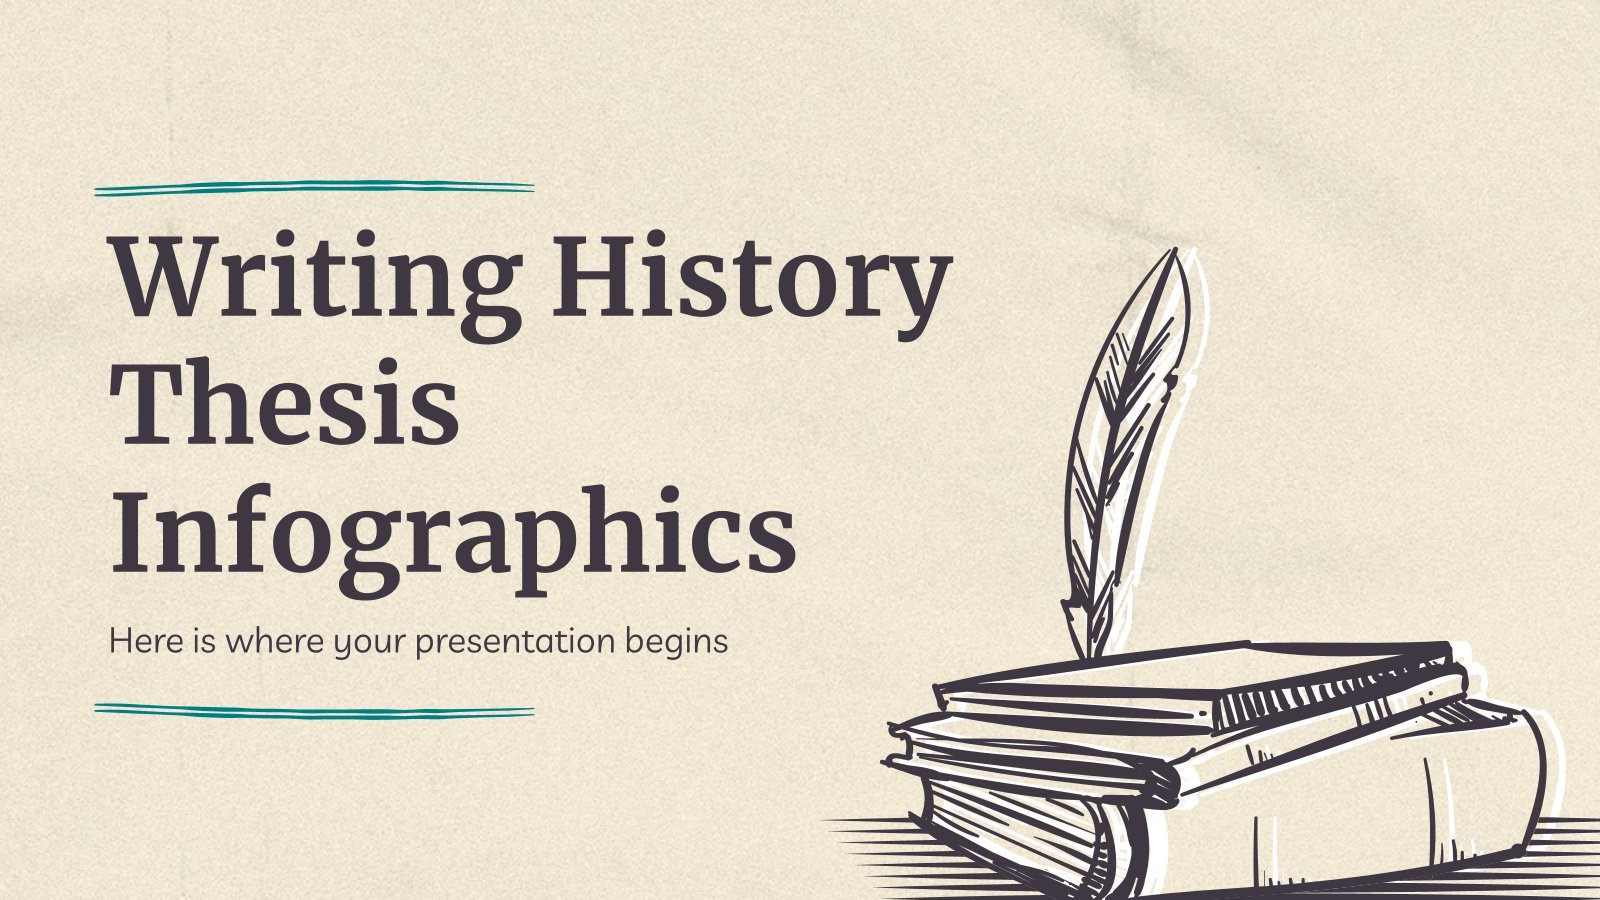 Writing History Thesis Infographics presentation template